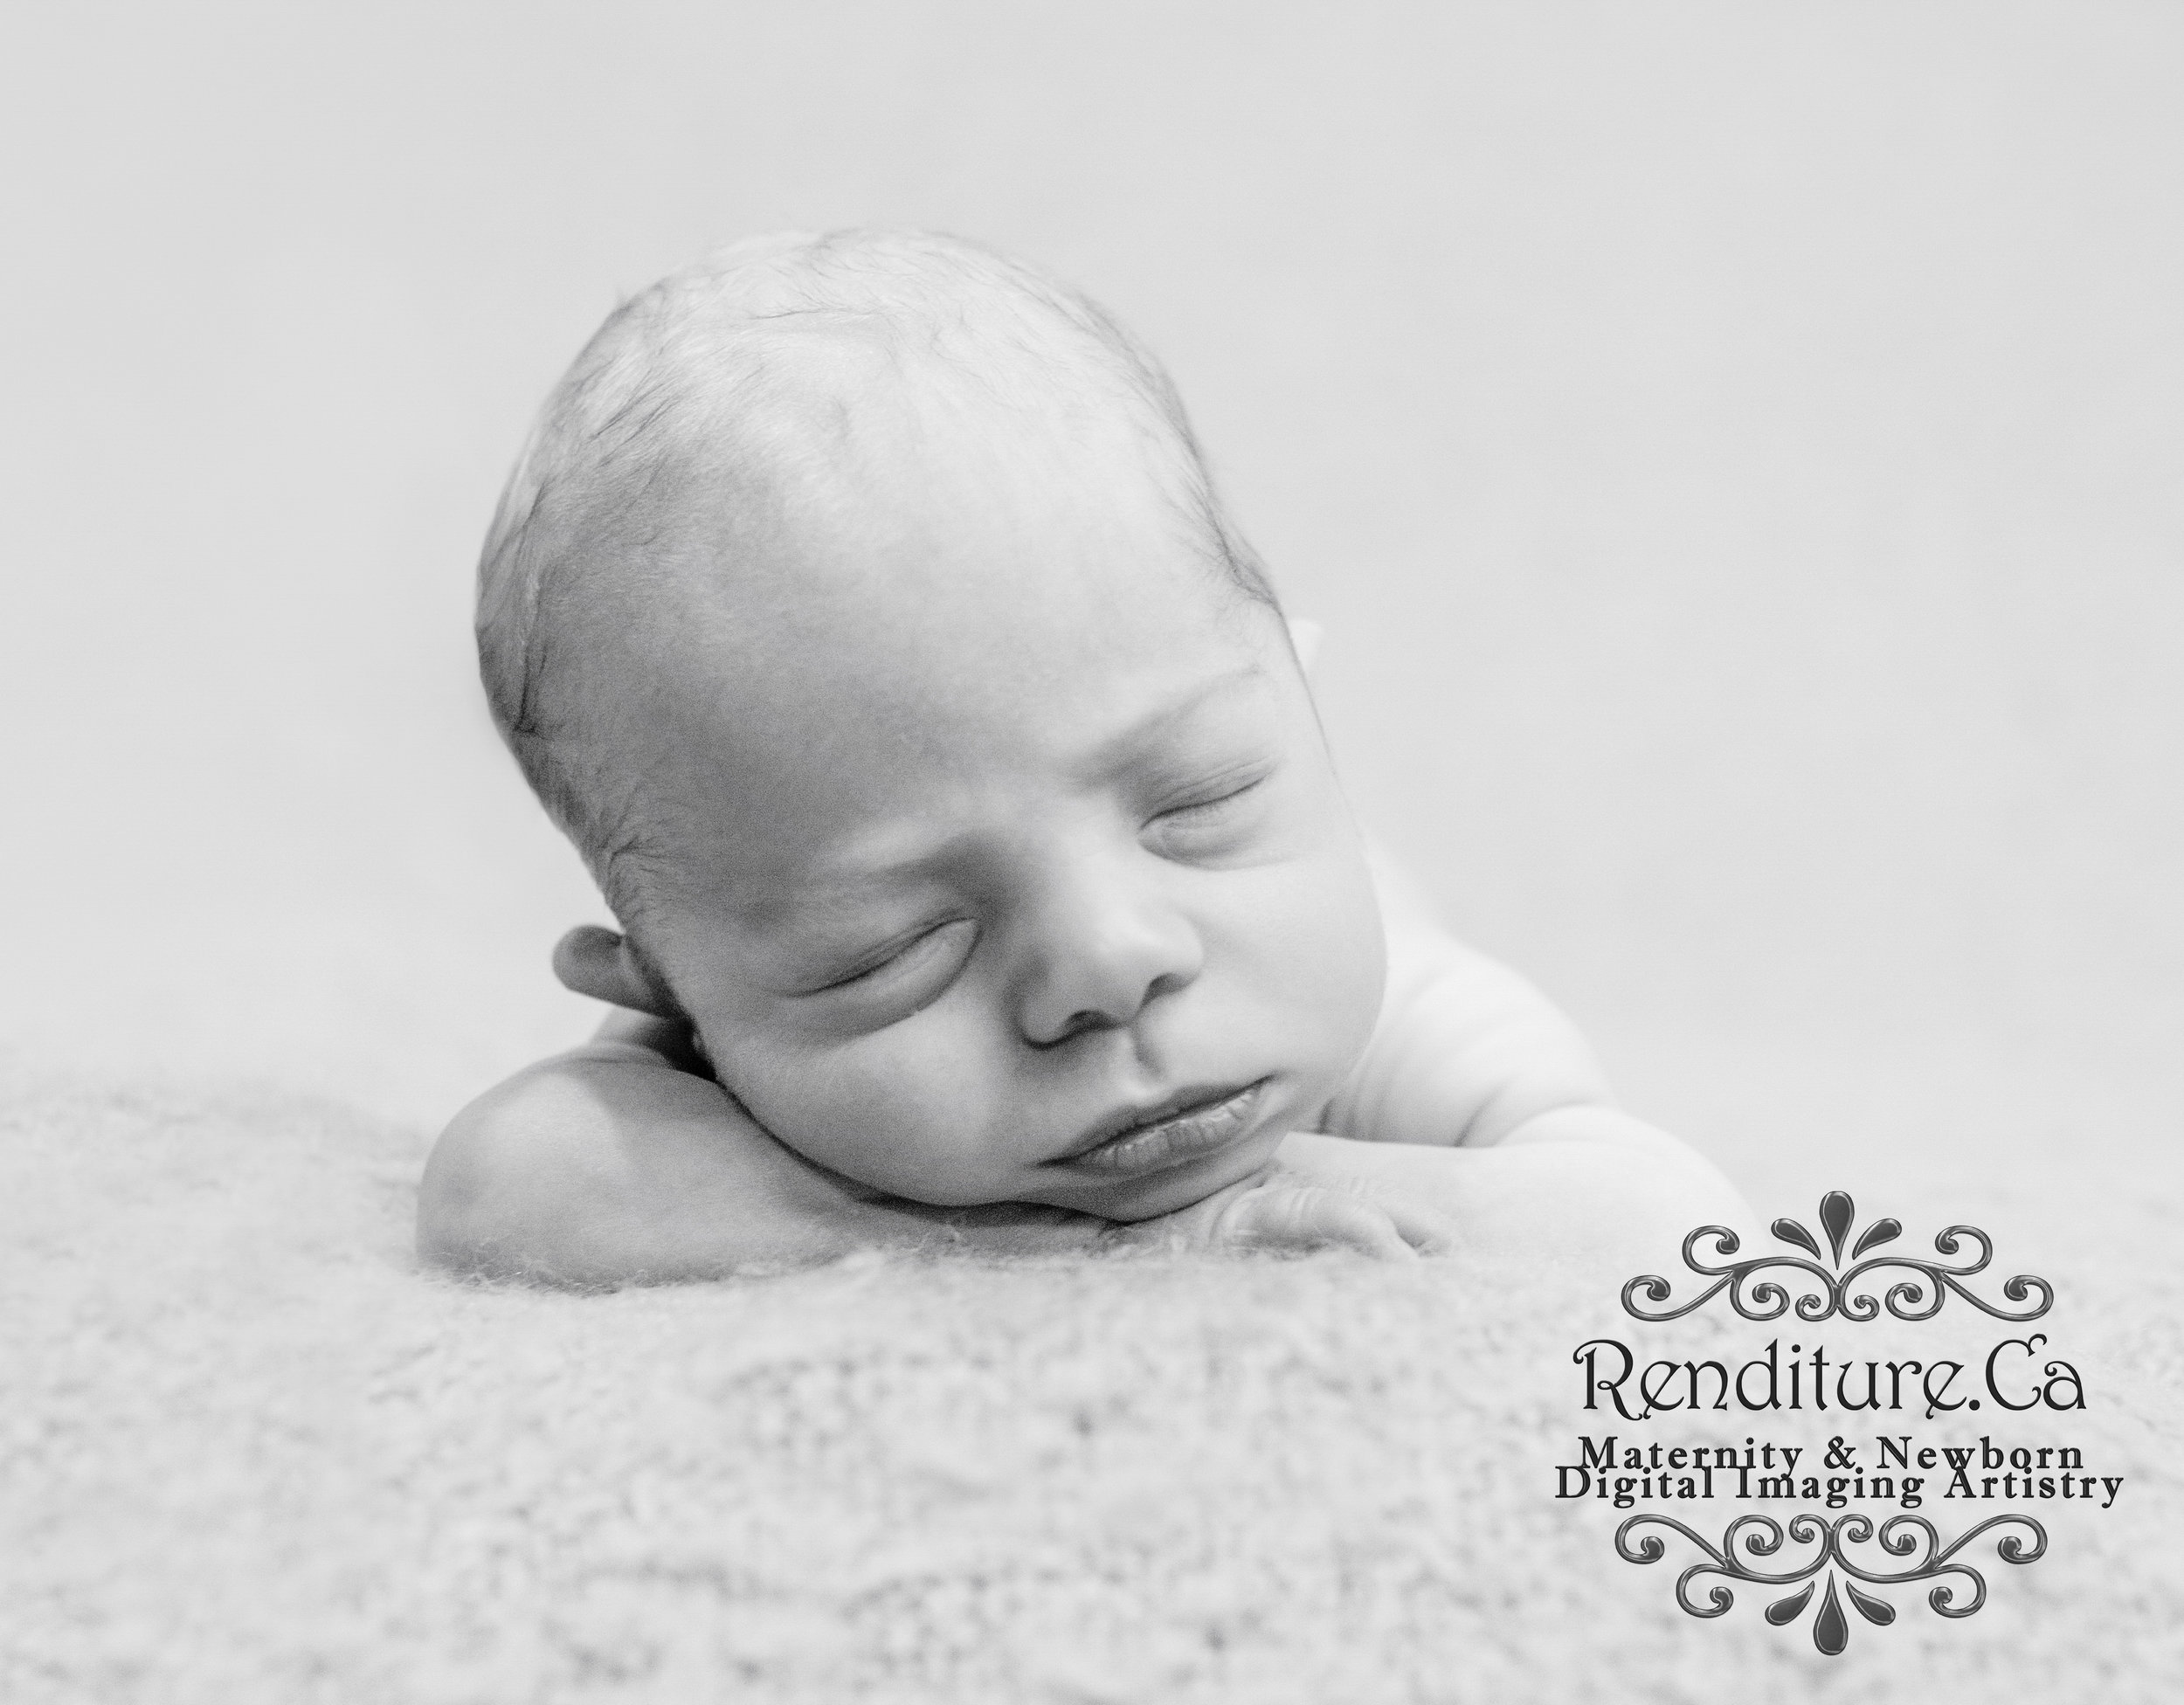 668866243 Renditure - Newborn Photography   Maternity Photography — Renditure ...